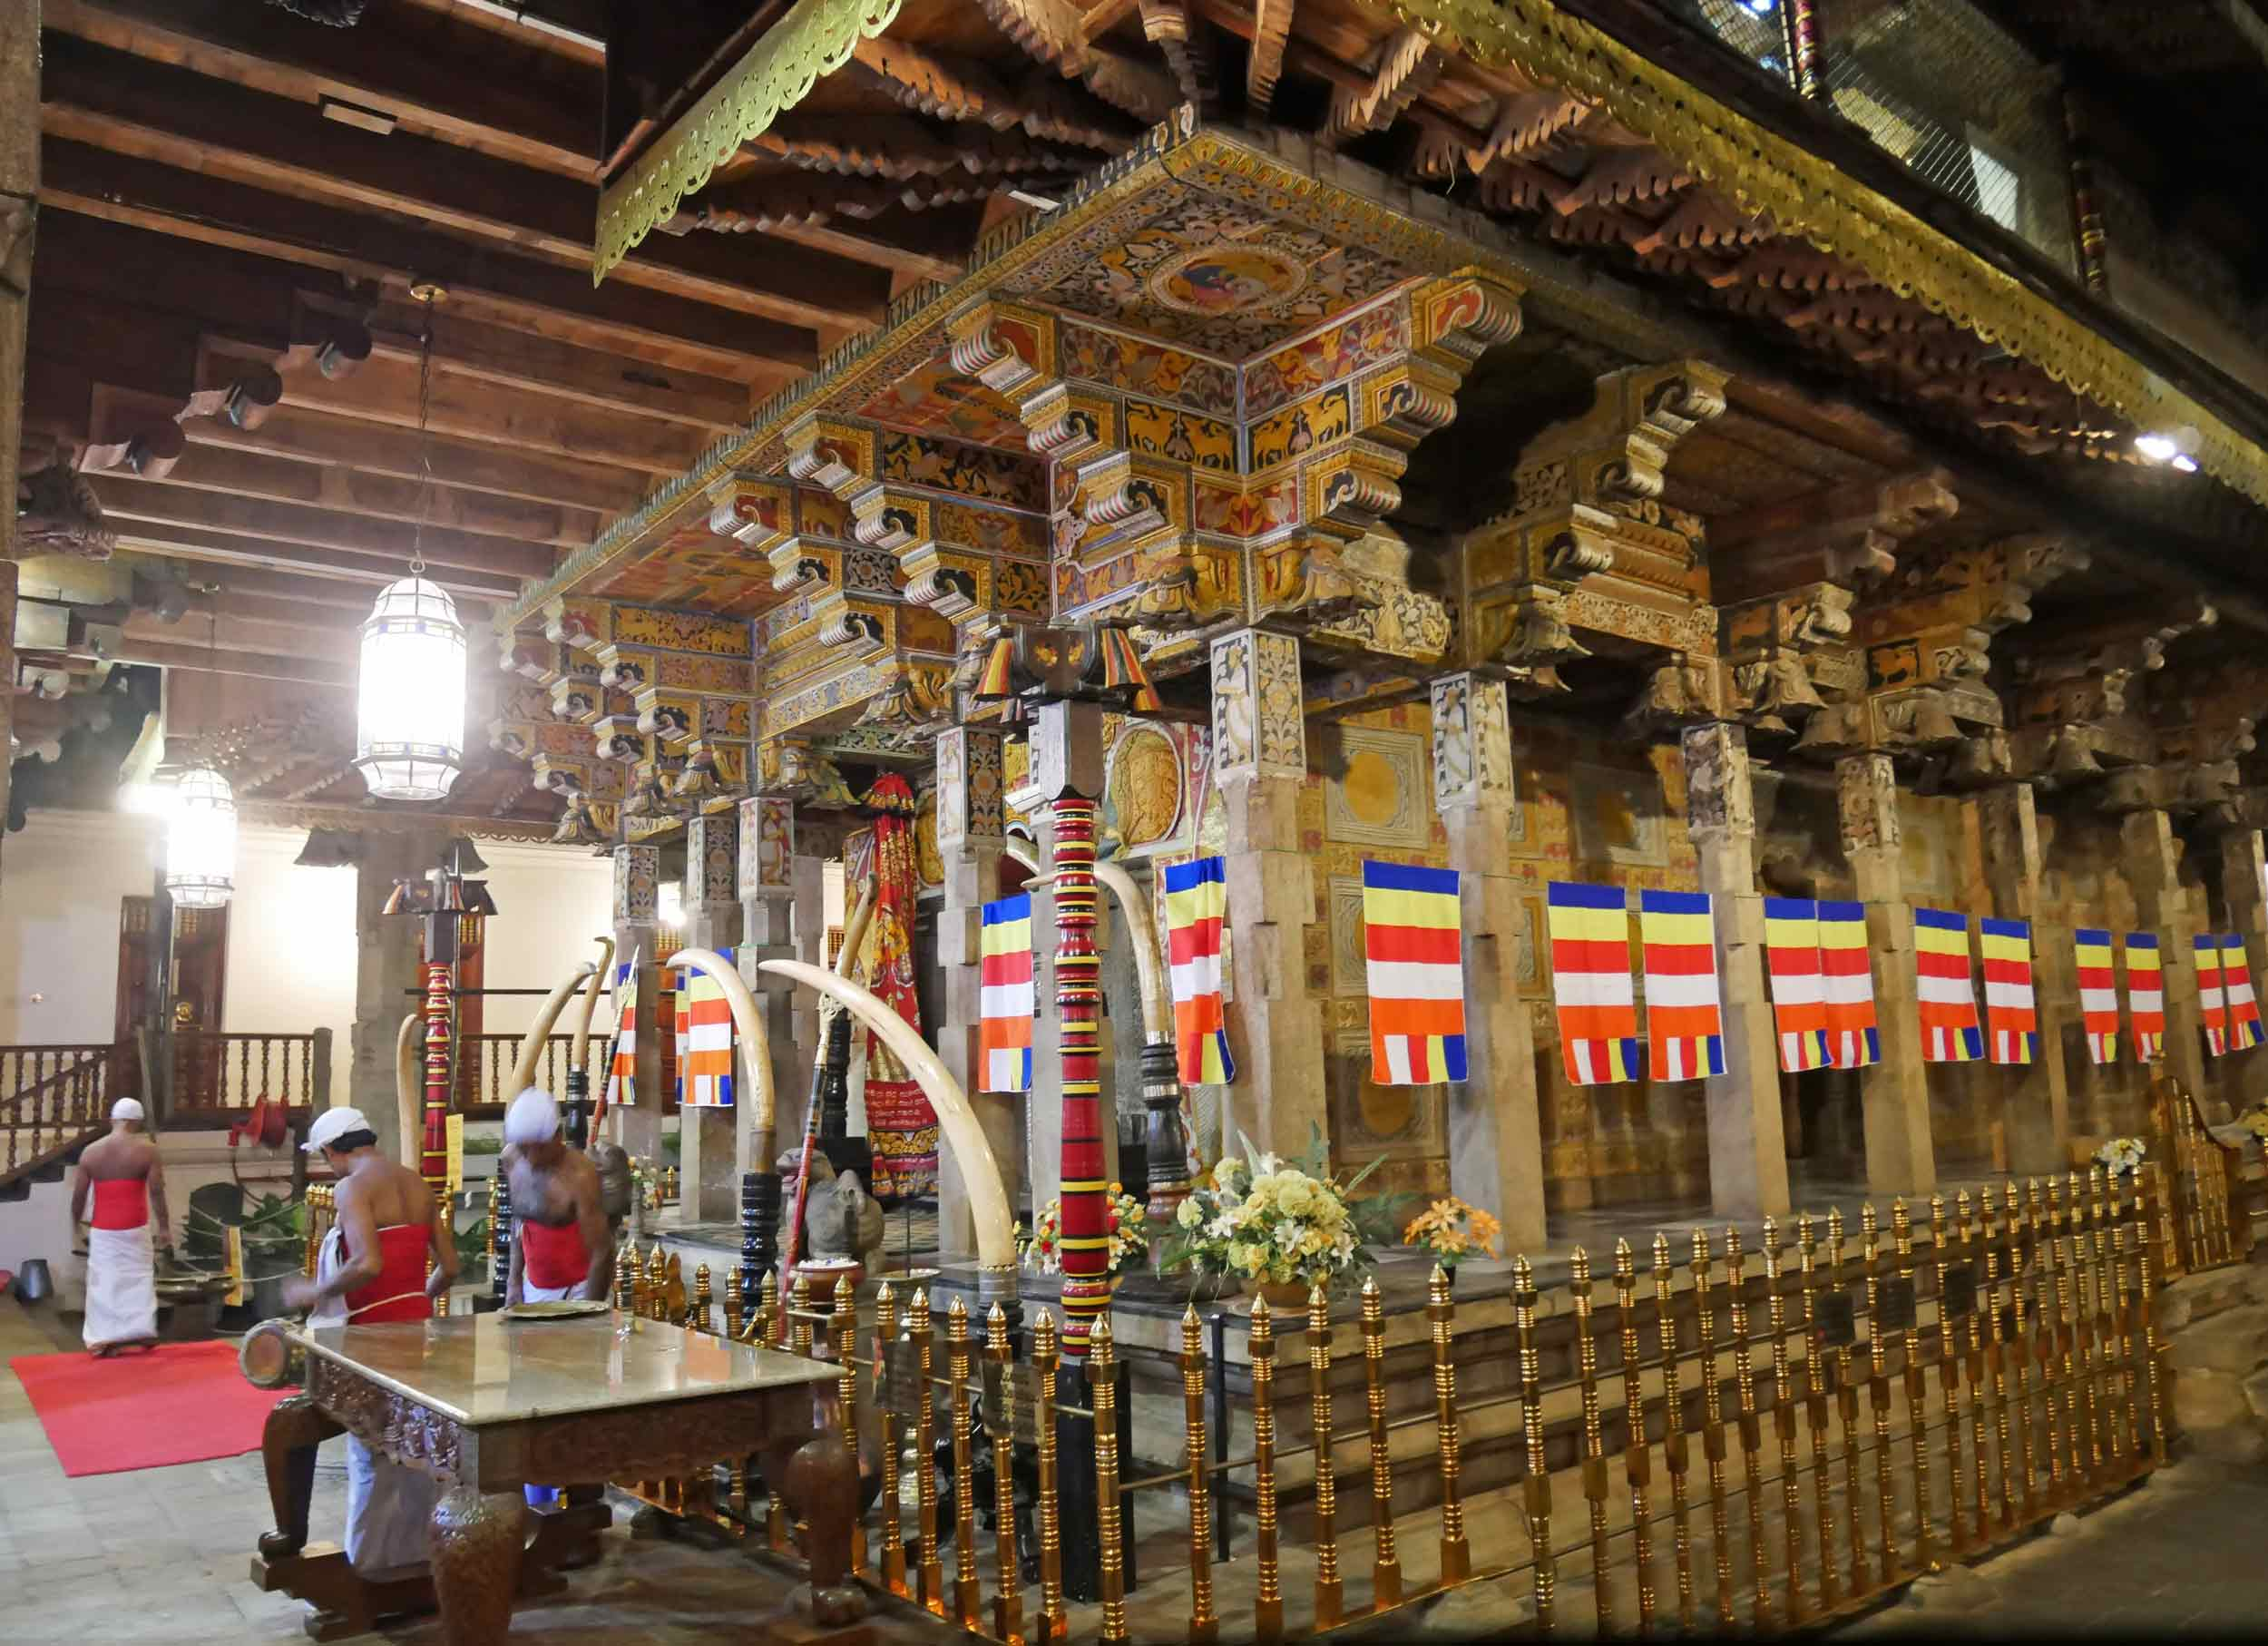 Shrine where the Sacred Tooth Relic is displayed and honored by devotees.